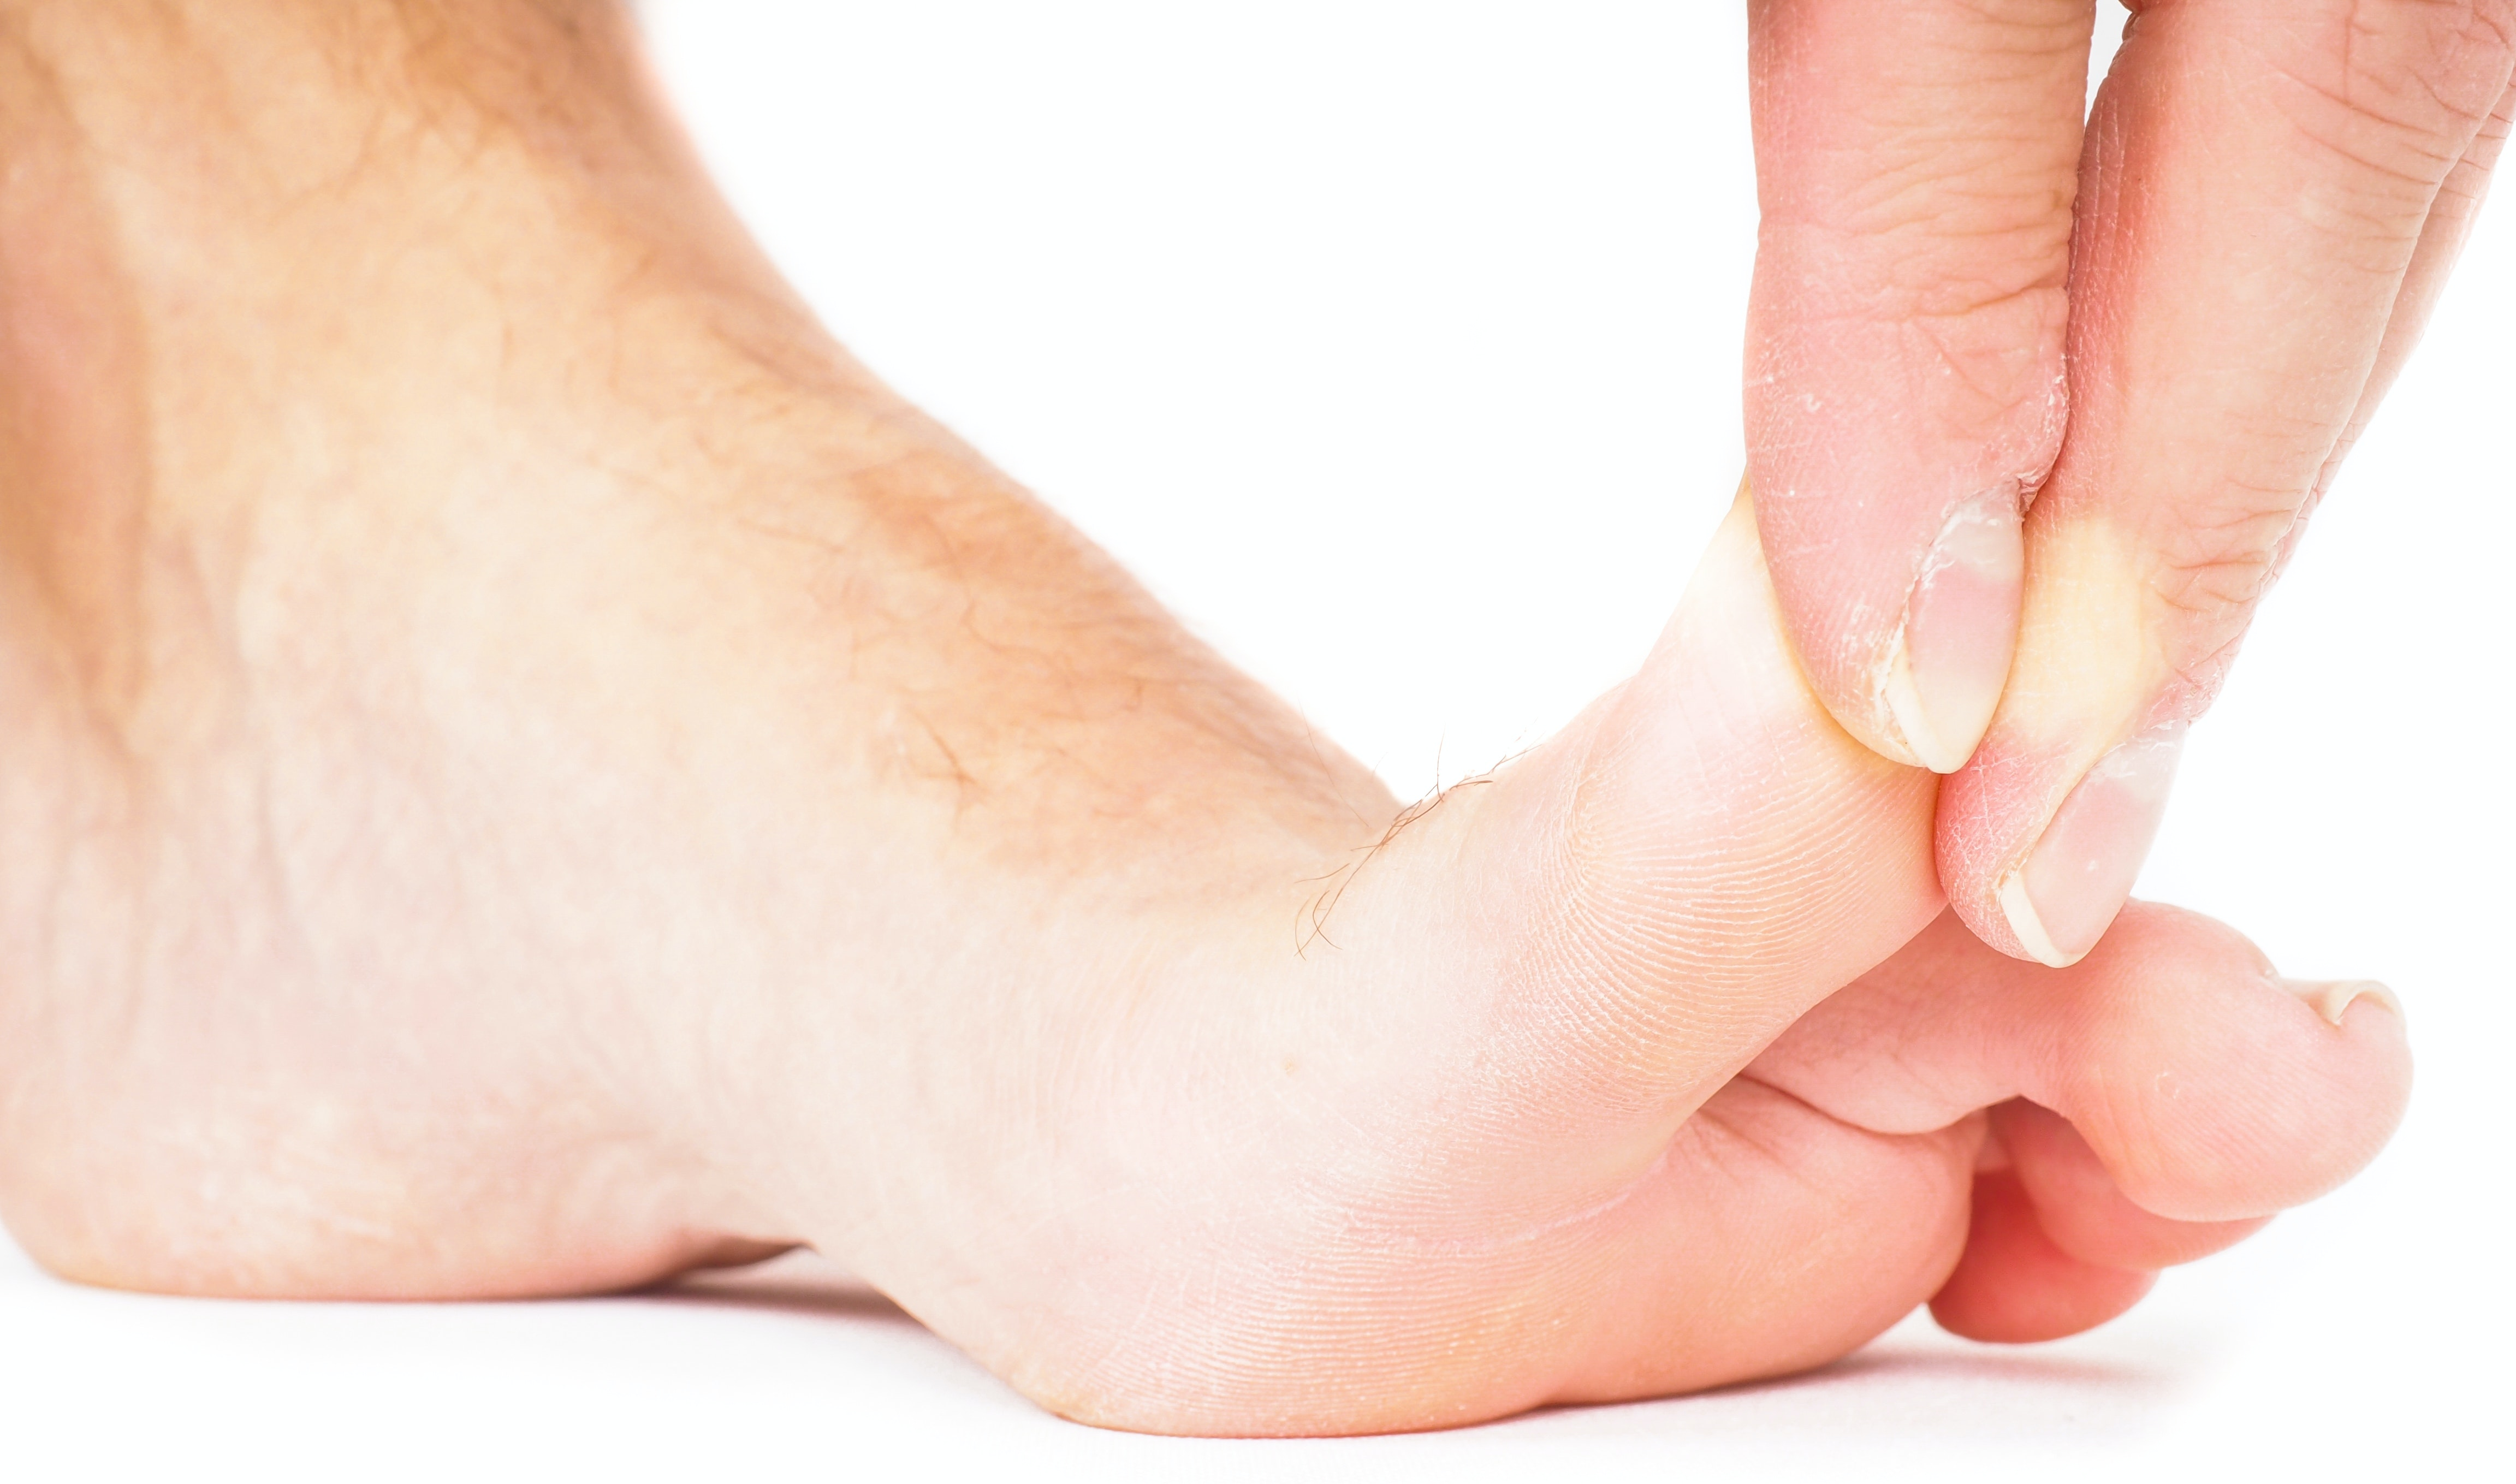 An image depicting a person suffering from big toe pain symptoms